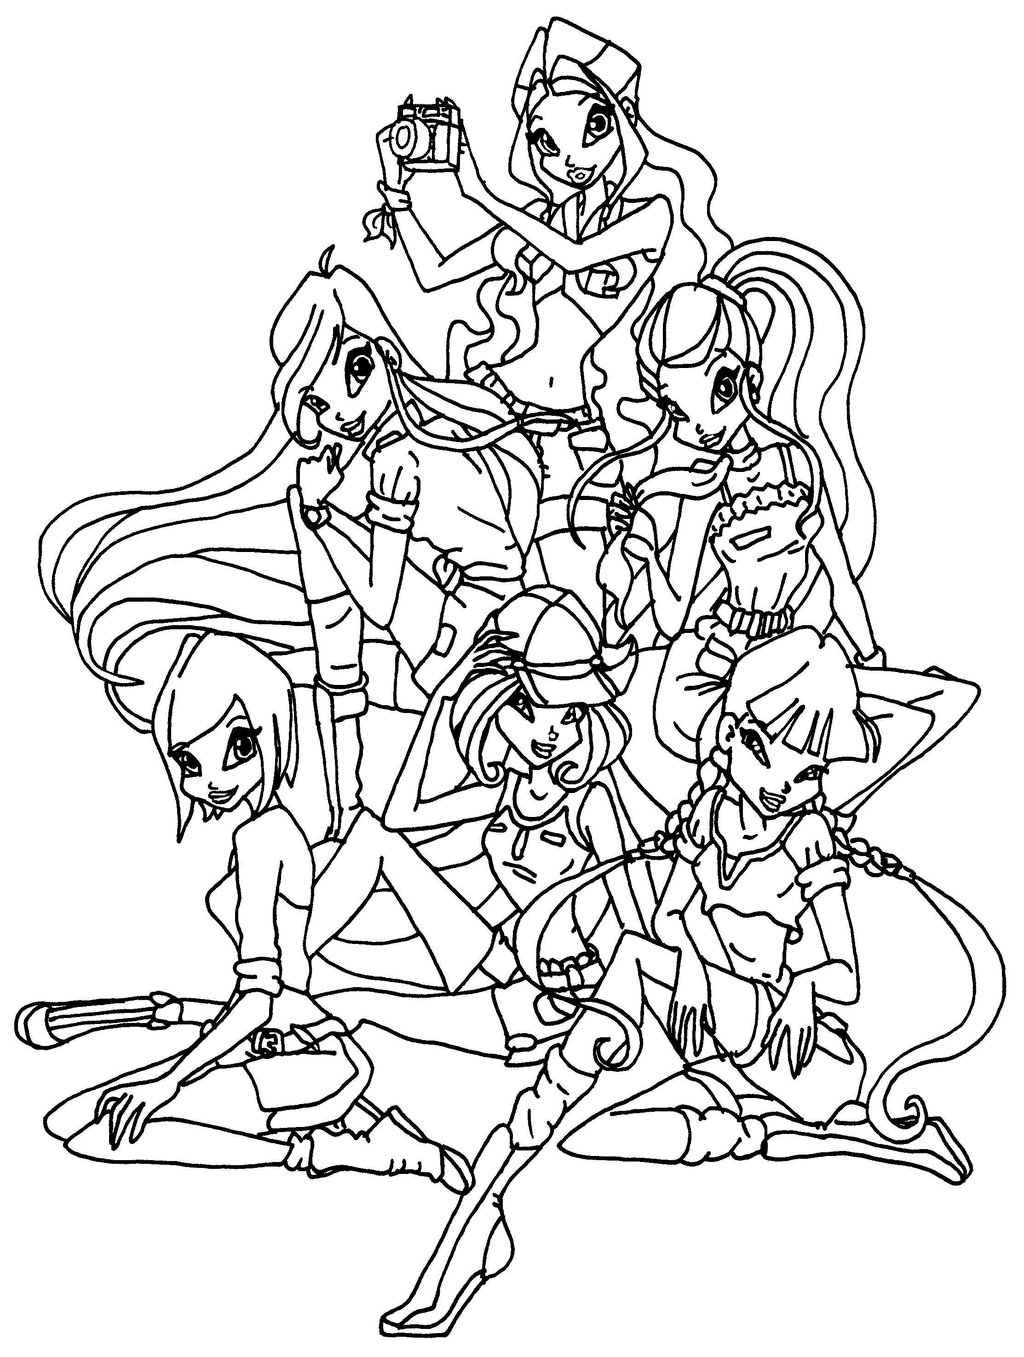 winx coloring page free printable winx coloring pages for kids cool2bkids coloring winx page